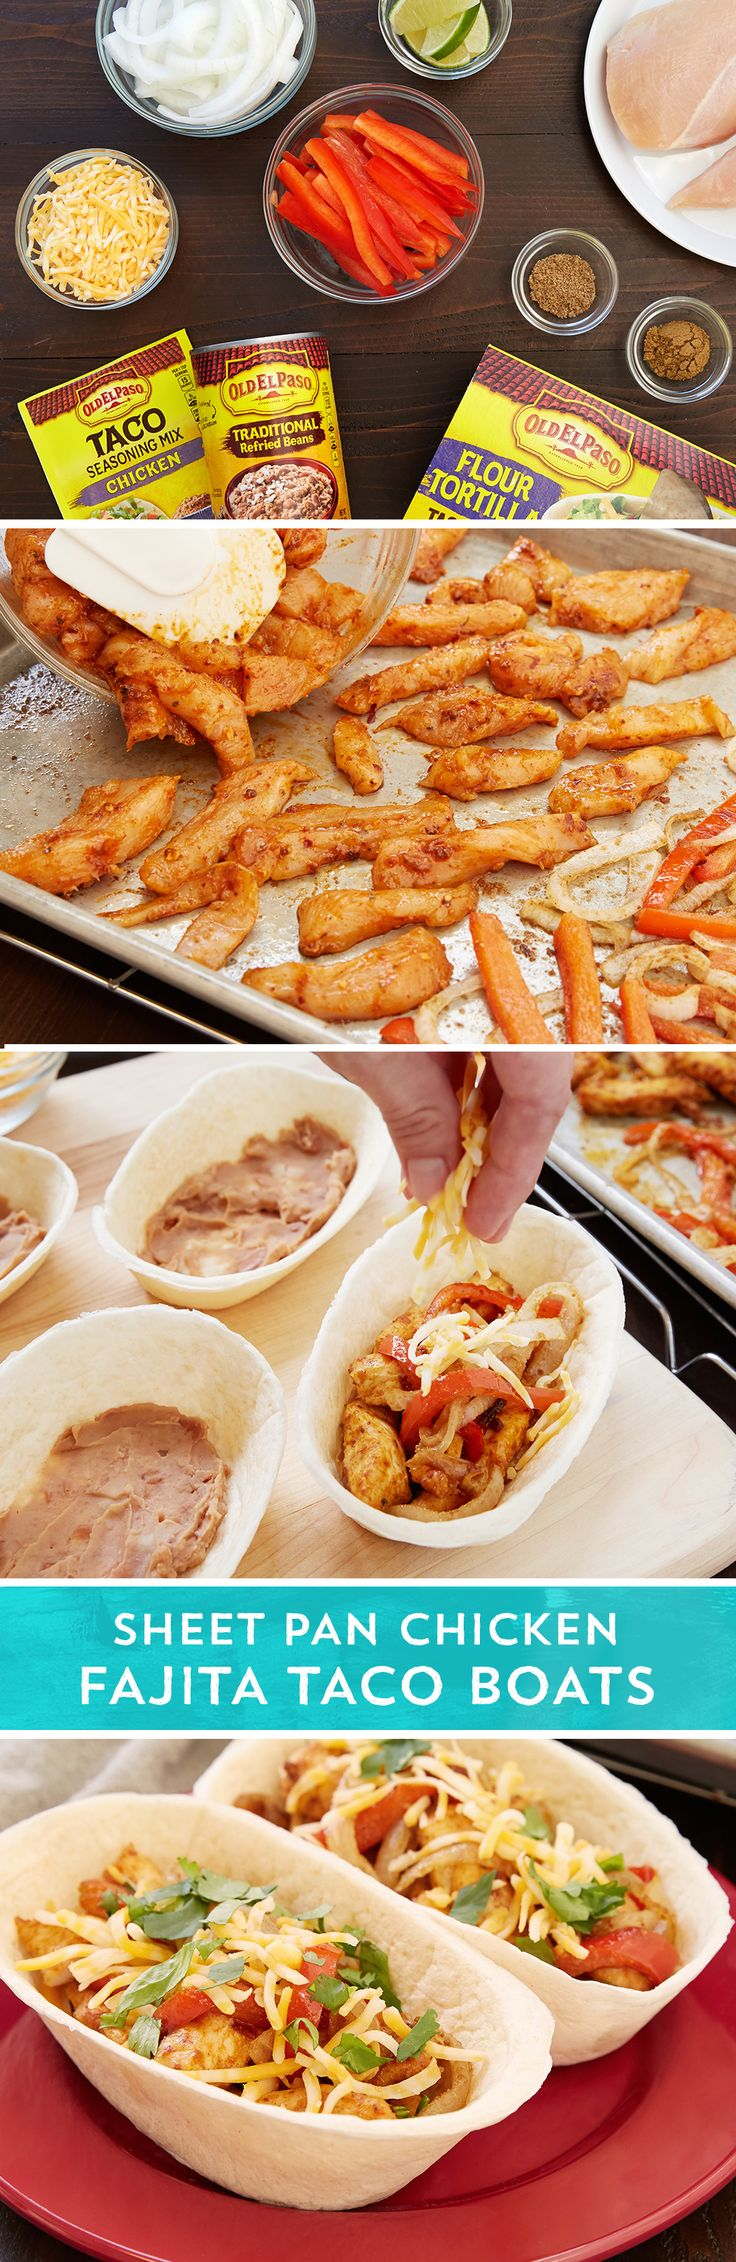 This sheet pan dinner makes fajitas easy for a weeknight winner you'll make again and again. Toss red bell pepper strips and thinly sliced onion with oil and seasonings and pour onto a prepared cookie sheet. Roast for 15 minutes while you prep the chicken strips with oil and seasonings. Add the chicken to the pan and roast for an additional 15 minutes. Heat your Old El Paso™ Taco Boats. Add Old El Paso™ refried beans to the bottom of each boat and top with your fajita meat and veggies. Add…